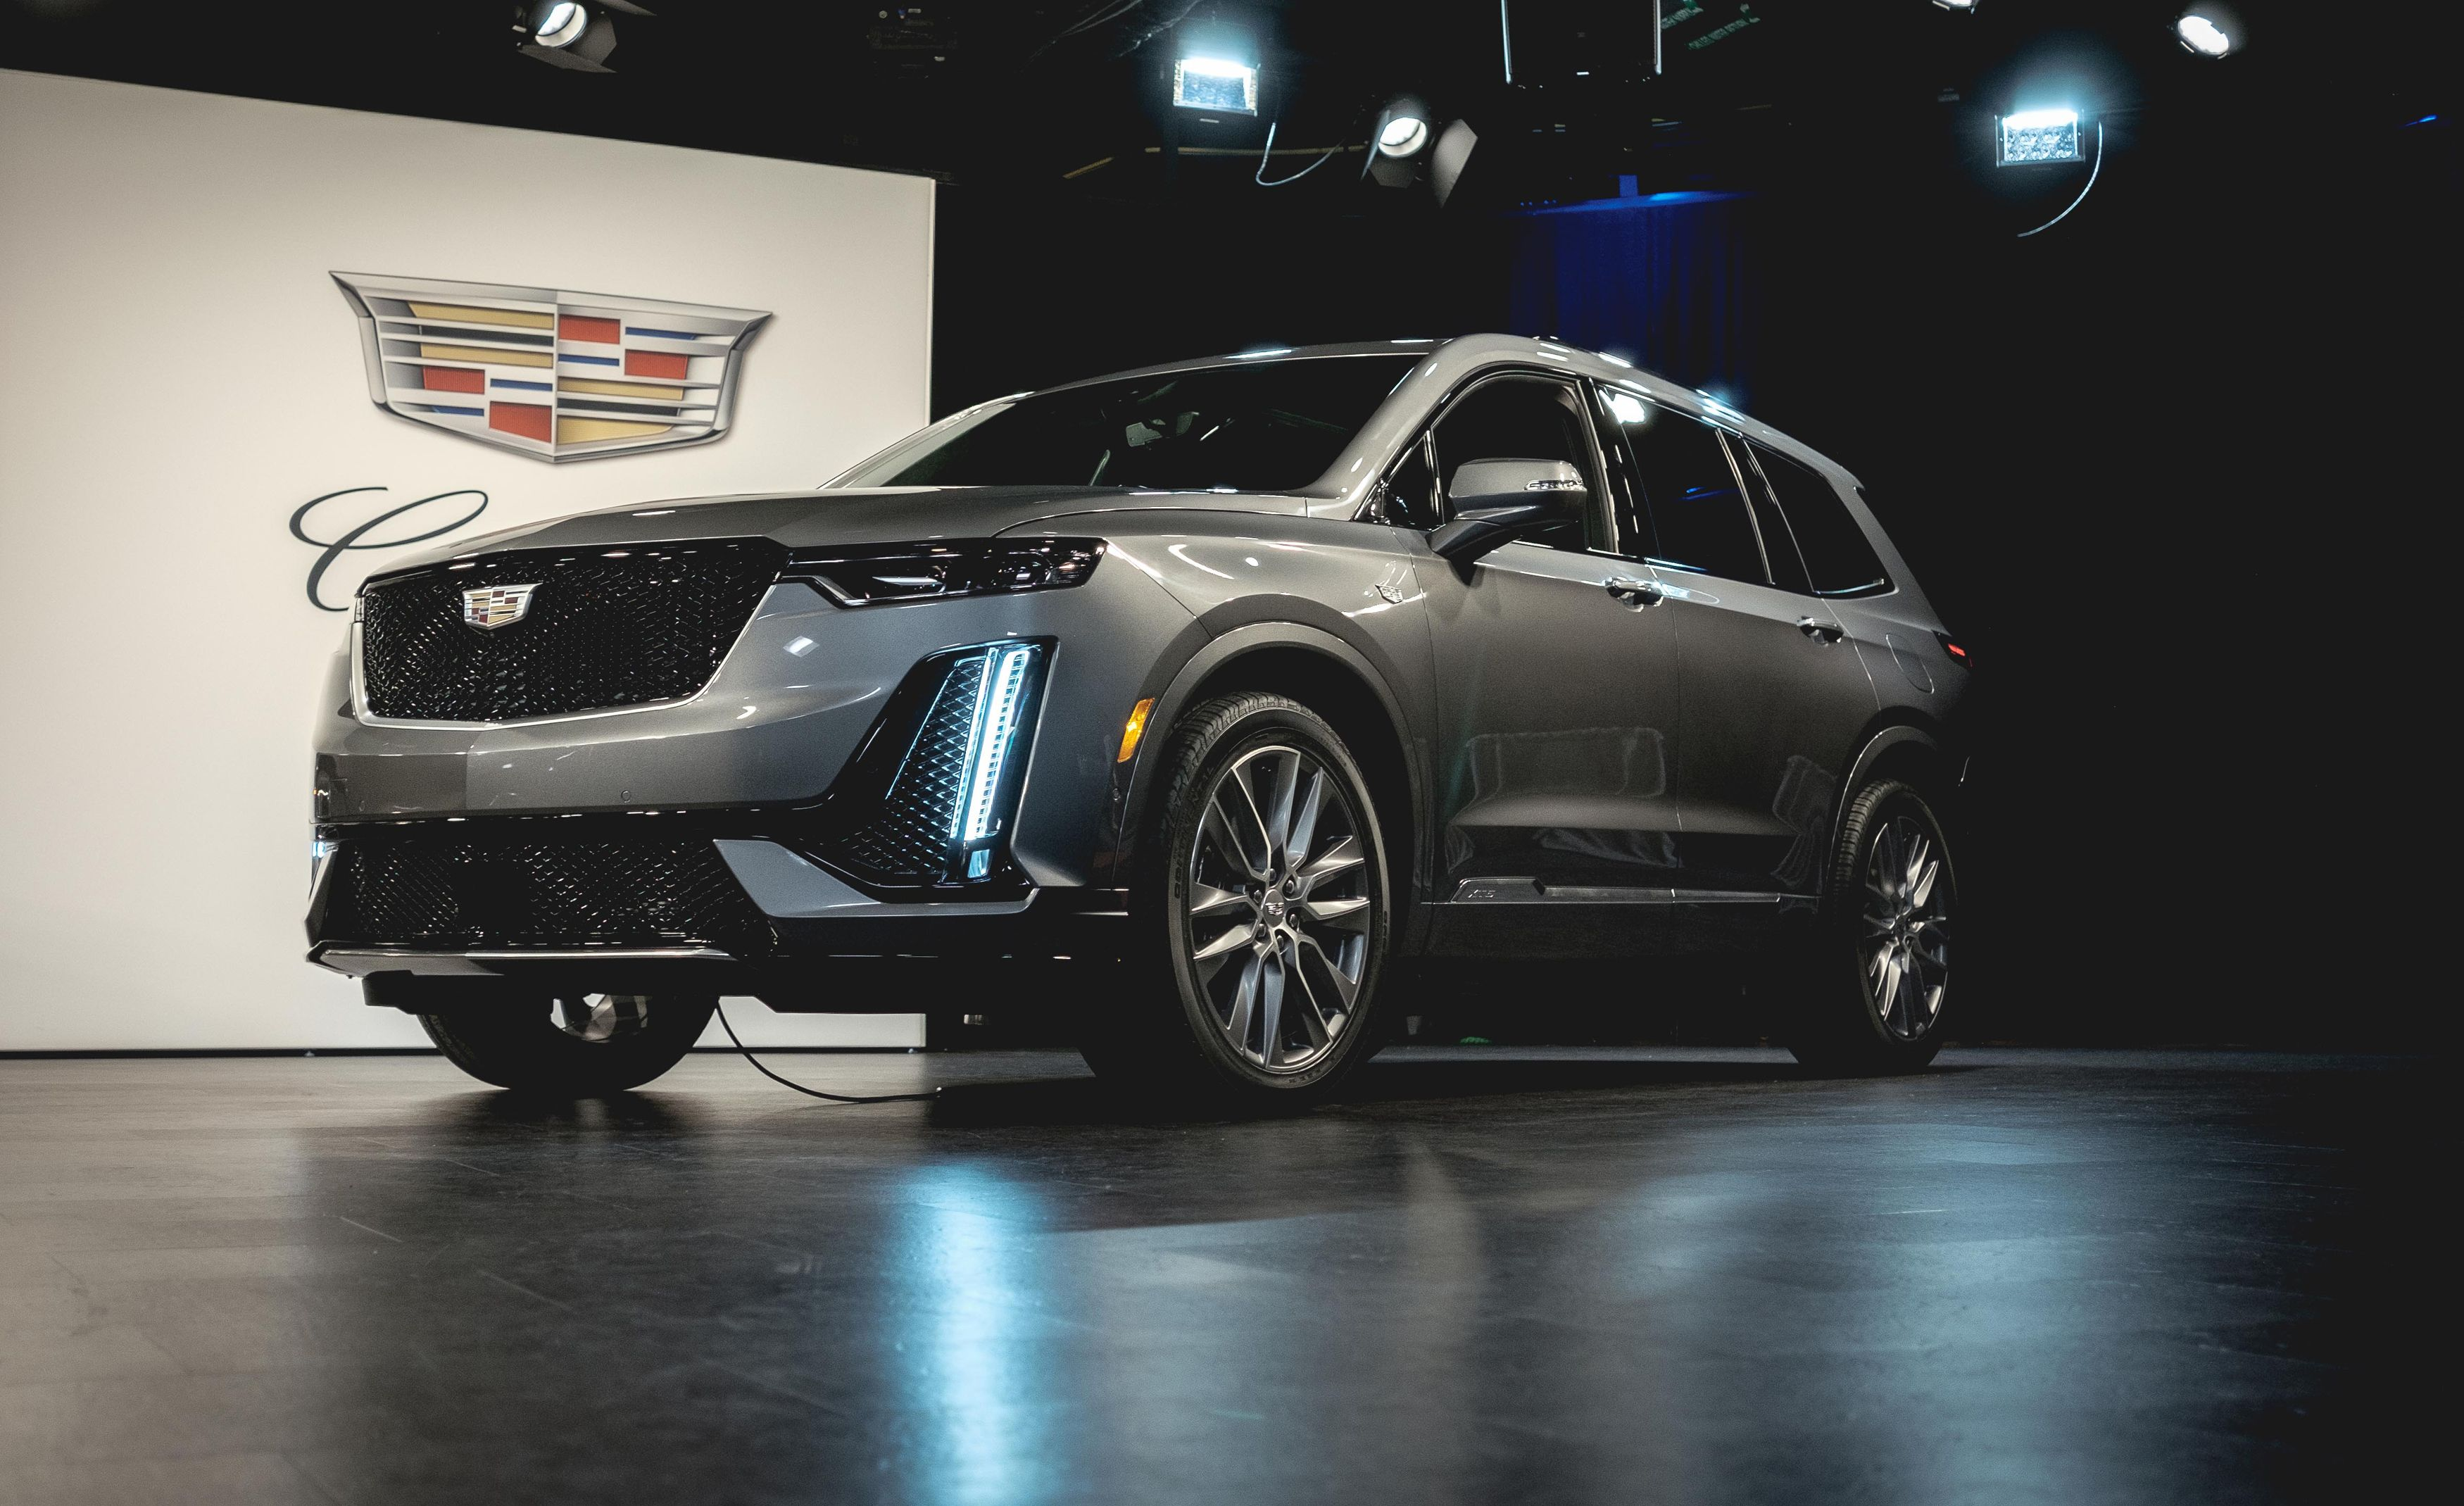 2020 Cadillac Xt6 Reviews Cadillac Xt6 Price Photos